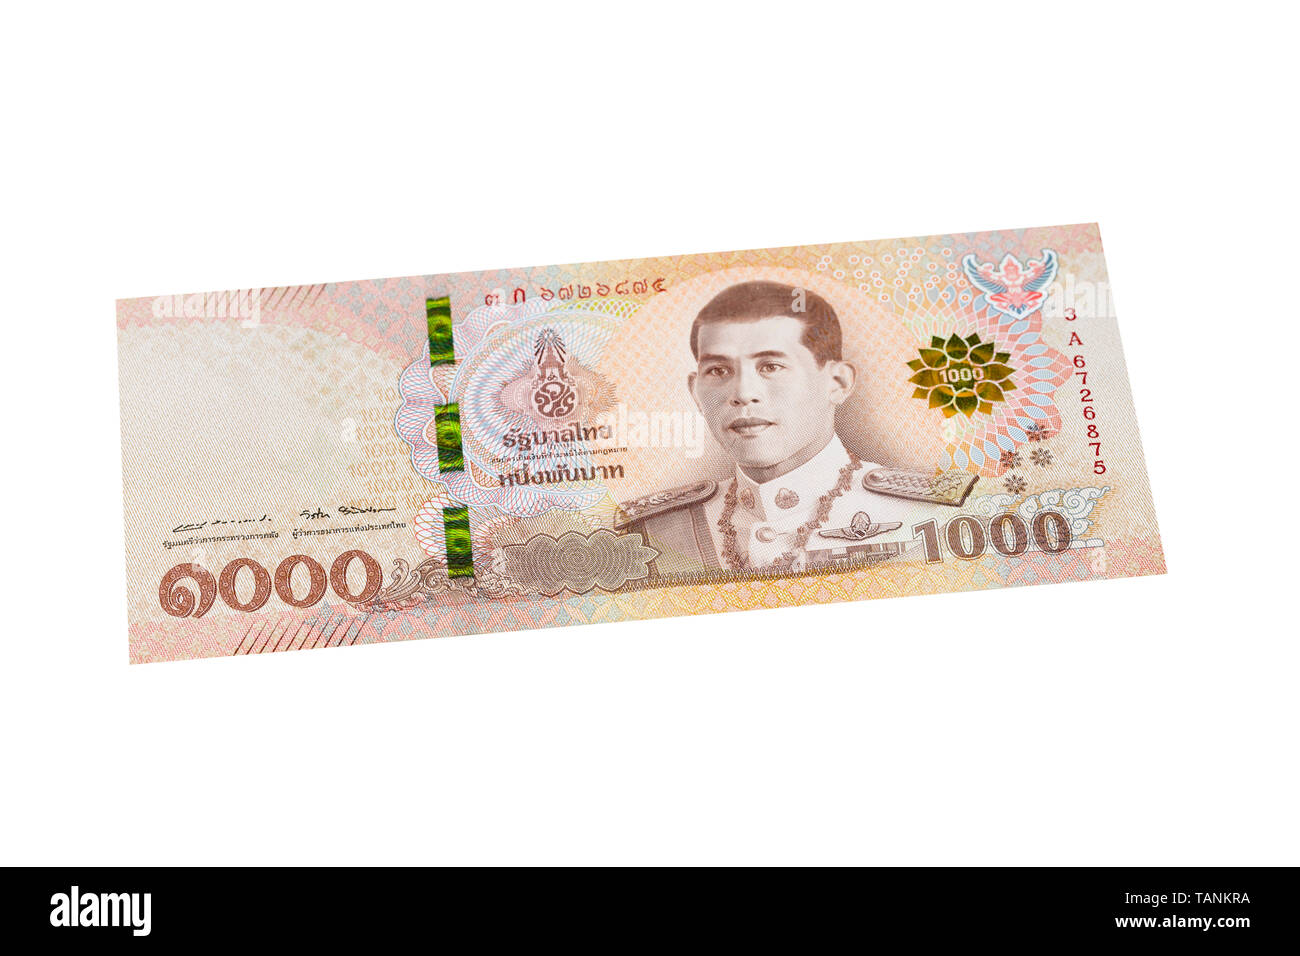 One thousand thai Baht note note on a white background - Stock Image